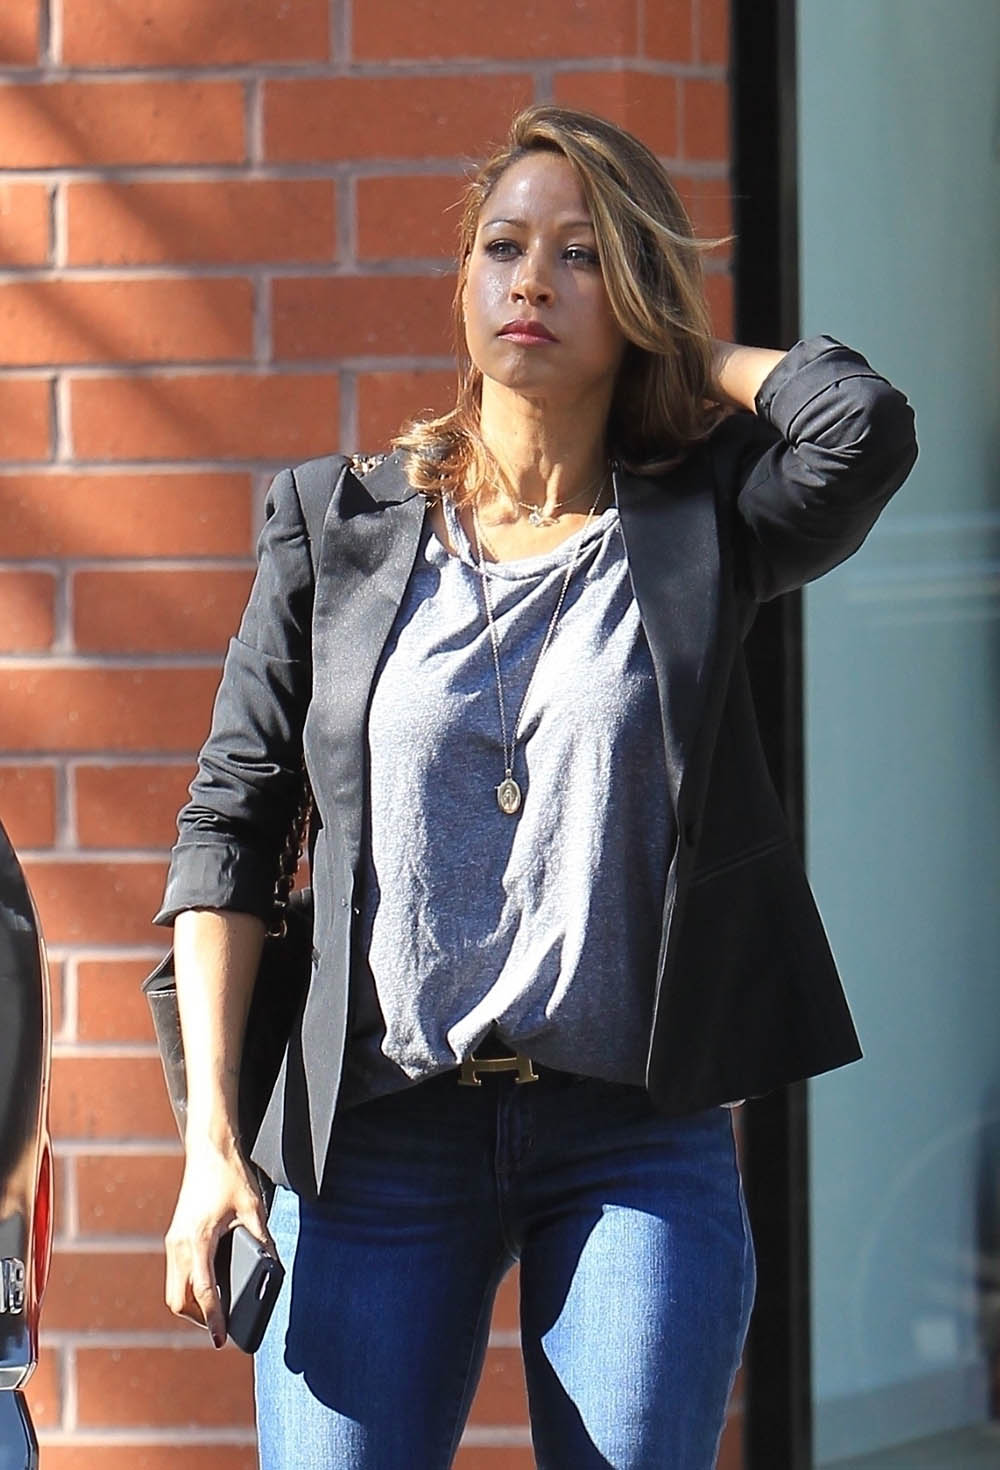 Clueless' star Stacey dash shopping in Beverly Hills